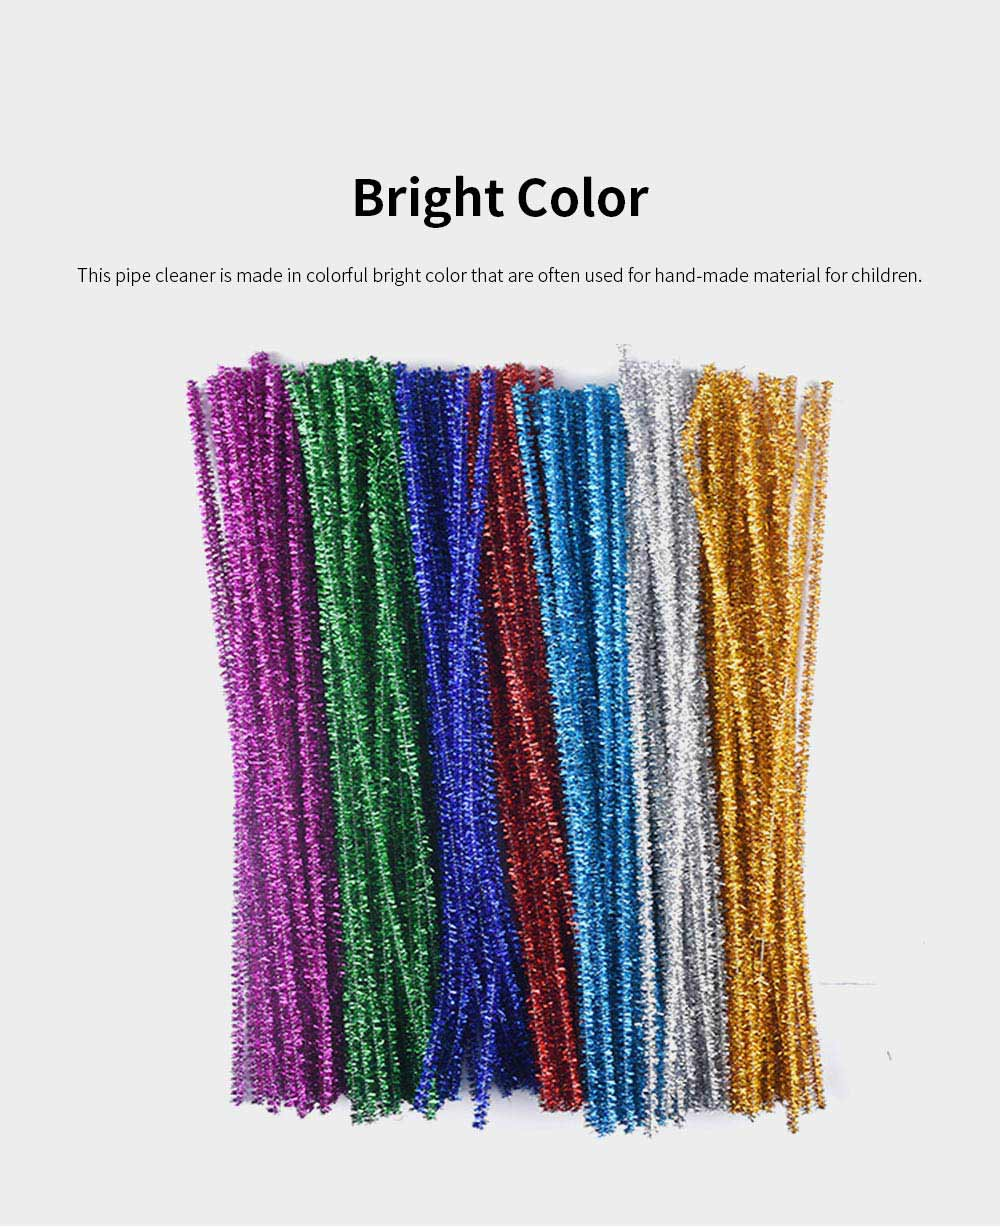 100PCS Colorful Pipe Stick for Kindergarten Handmade Material Mixed Colorful Pipe Twist DIY Cyclic Wave Crooked Stick 2